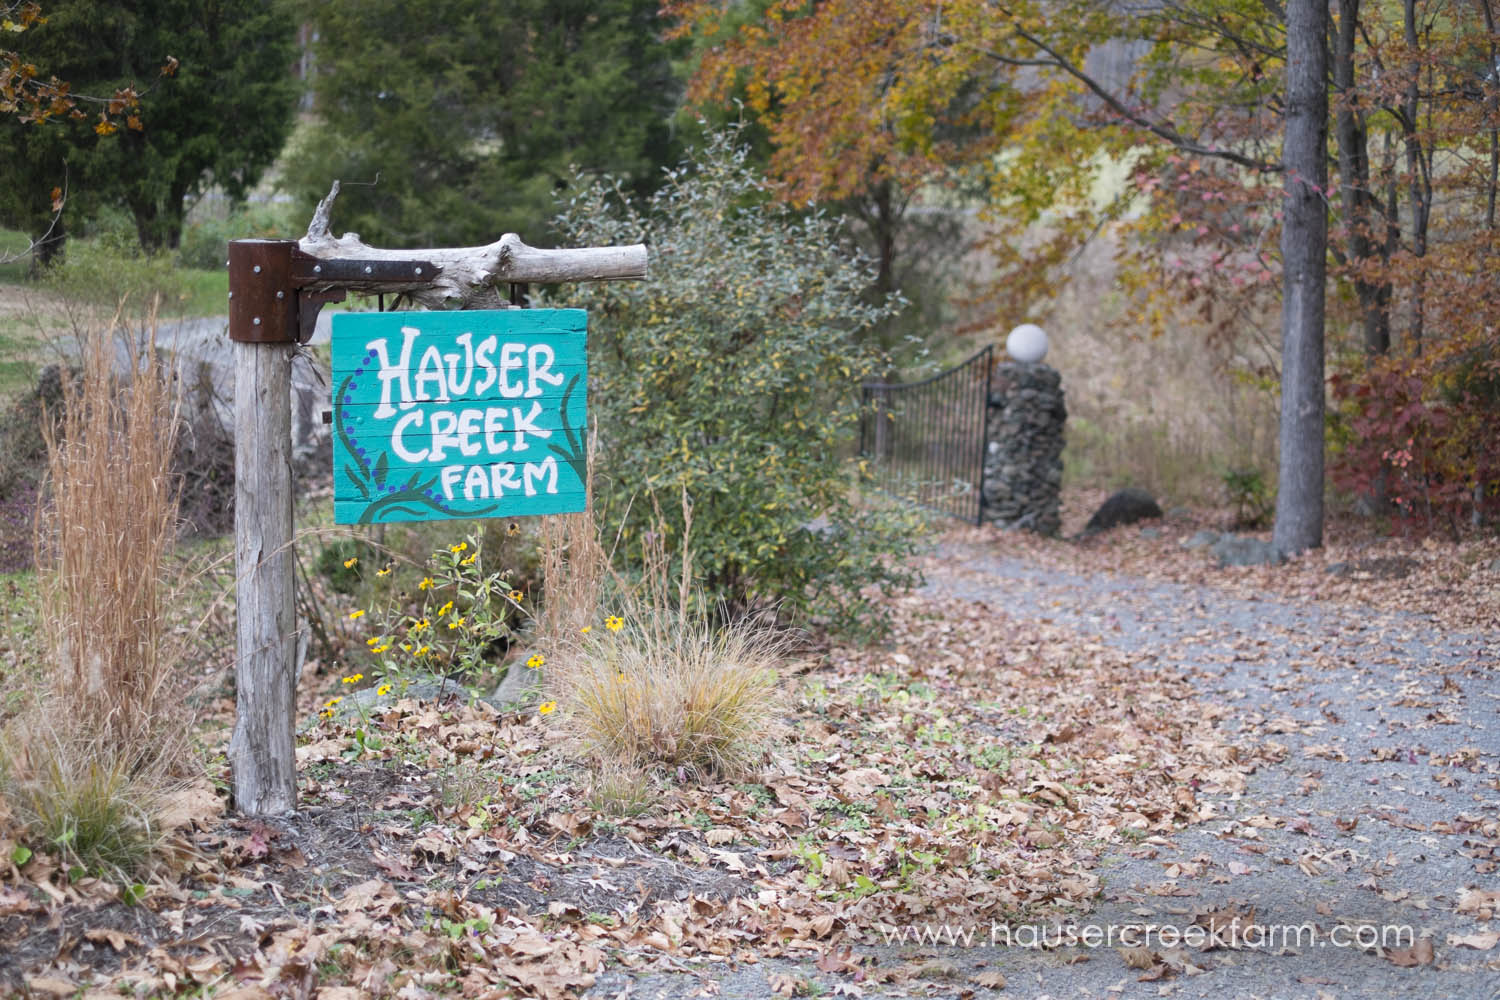 sign-at-hauser-creek-farm-photo-by-chris-fowler-1149color.jpg